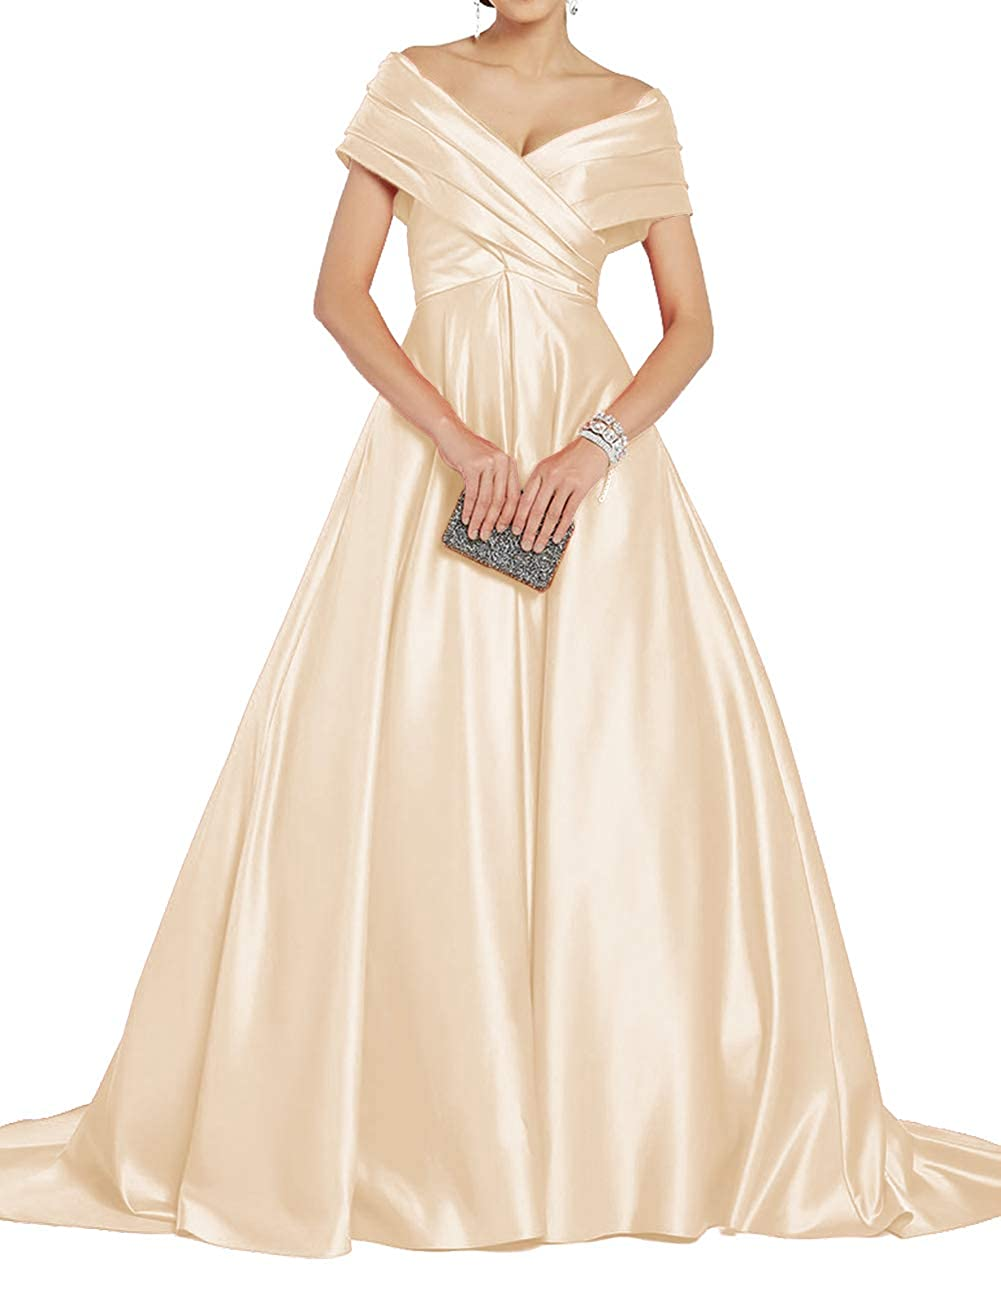 Champagne Uther Off Shoulder Prom Dresses Long ALine Satin Ball Gowns for Women Formal Evening